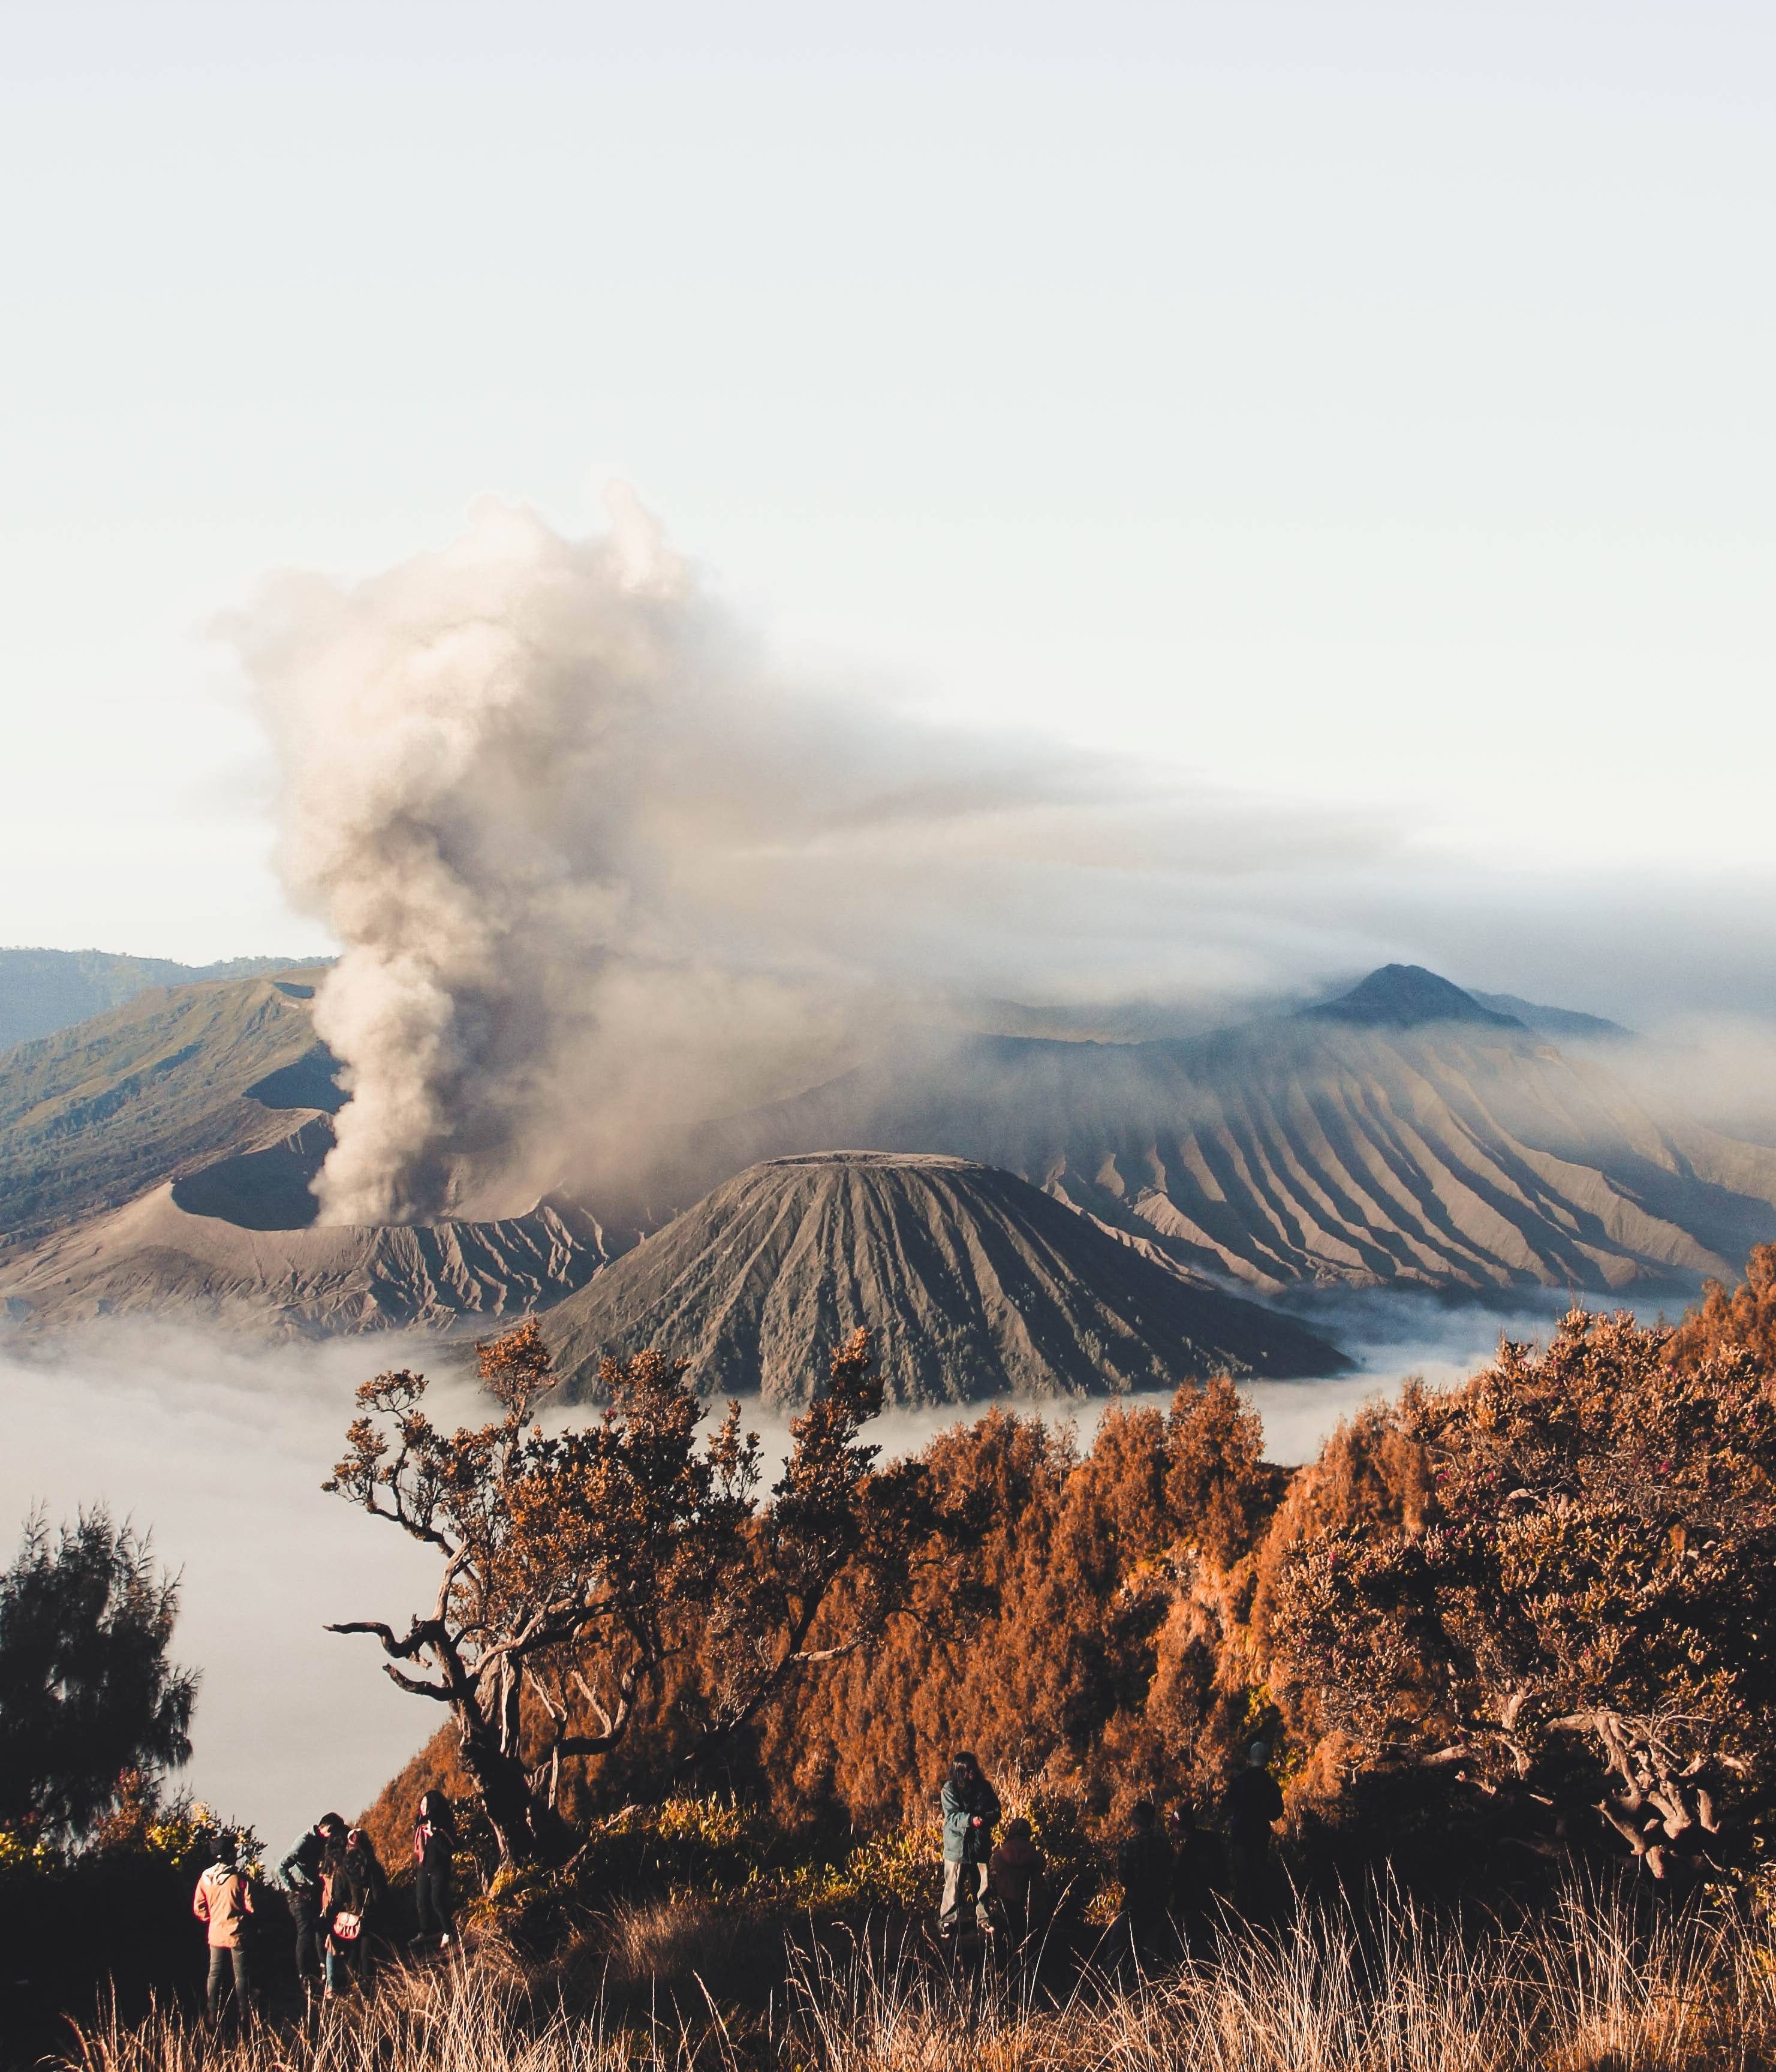 Several people on a mountain slope with a cloud of smoke rising up from a volcano crater in the background